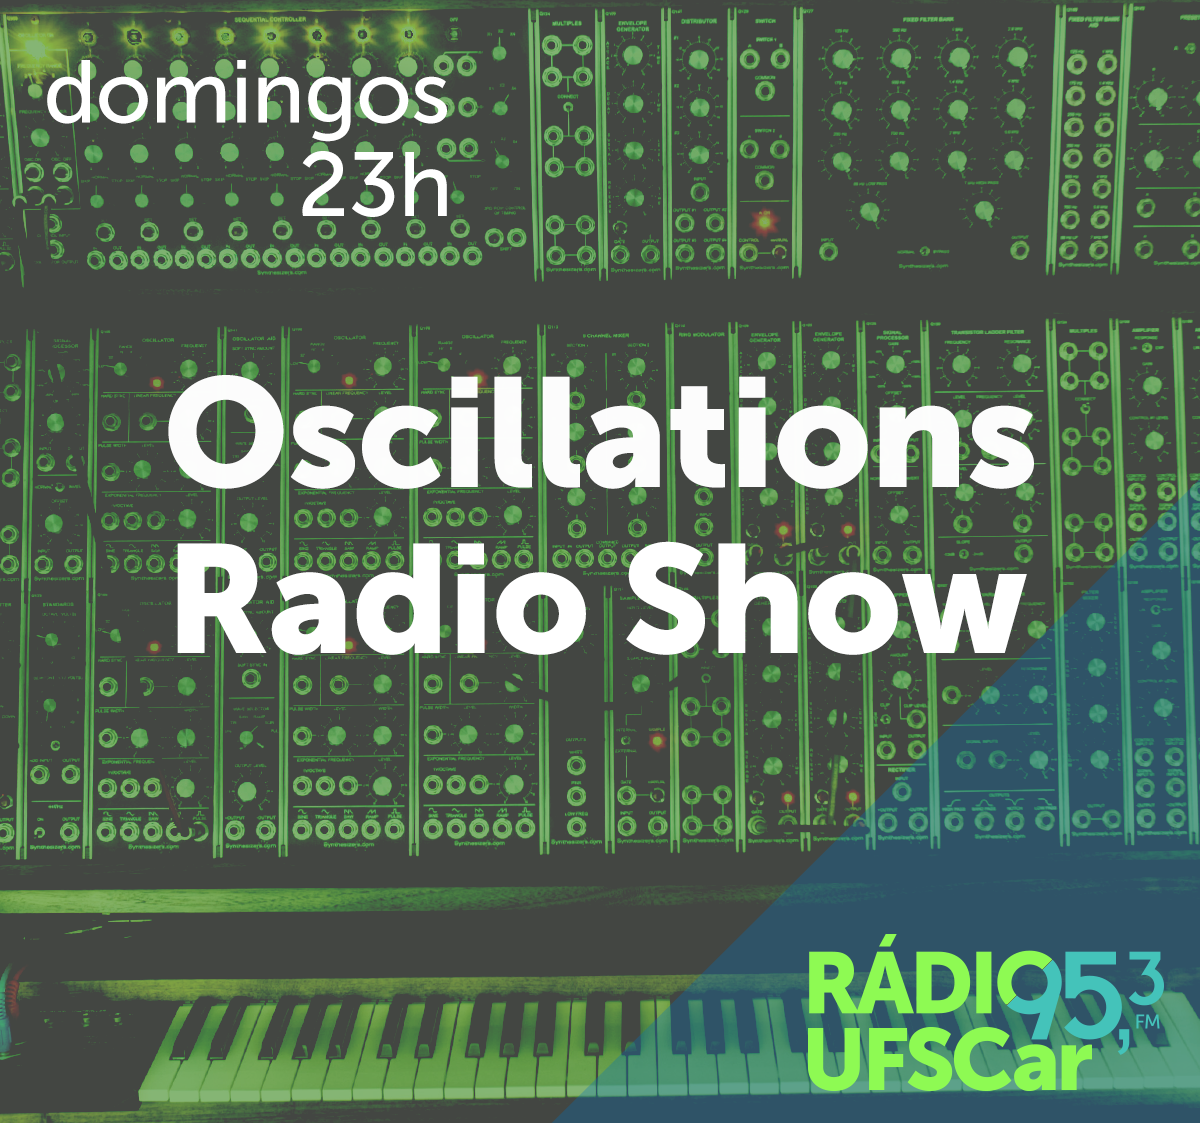 Oscillations Radio Show